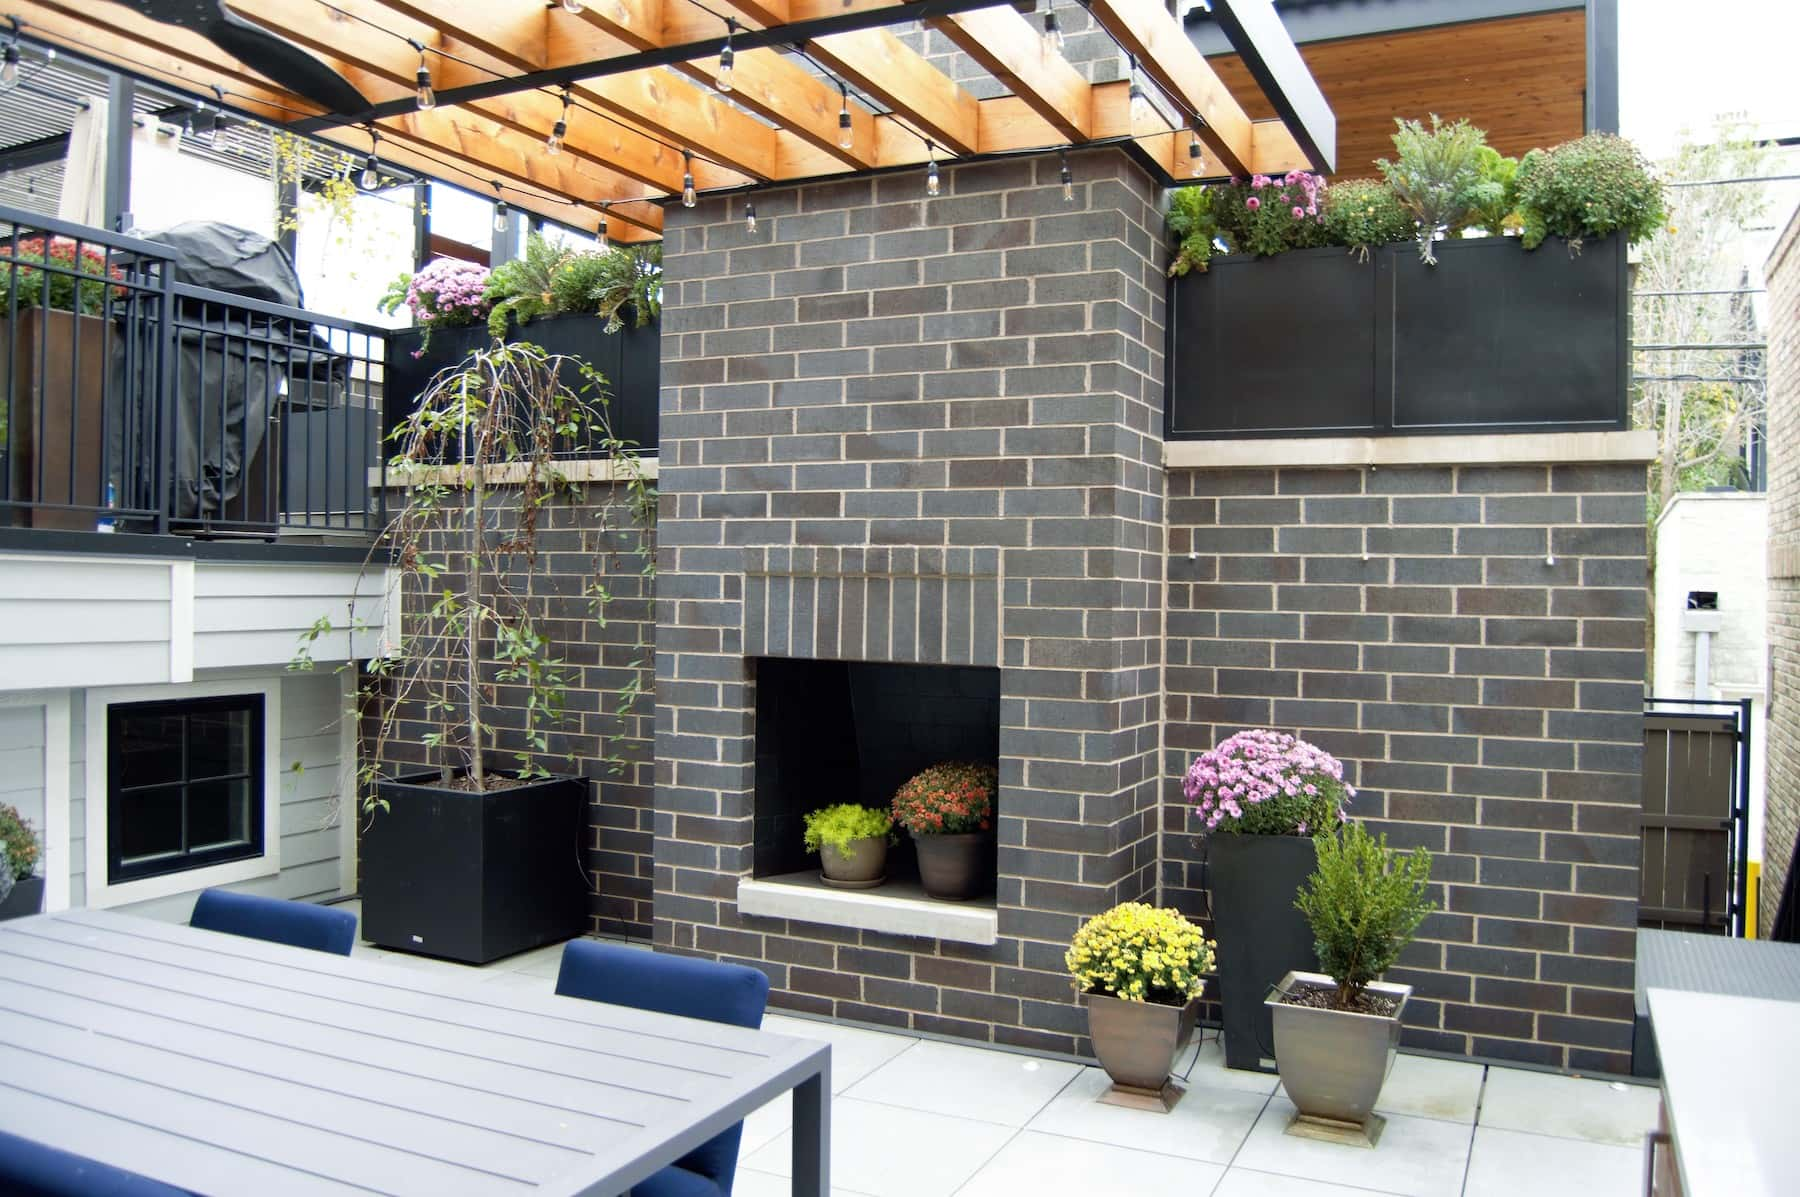 Outdoor Fireplace Planters Outdoor Dining Pergola Lake View Chicago